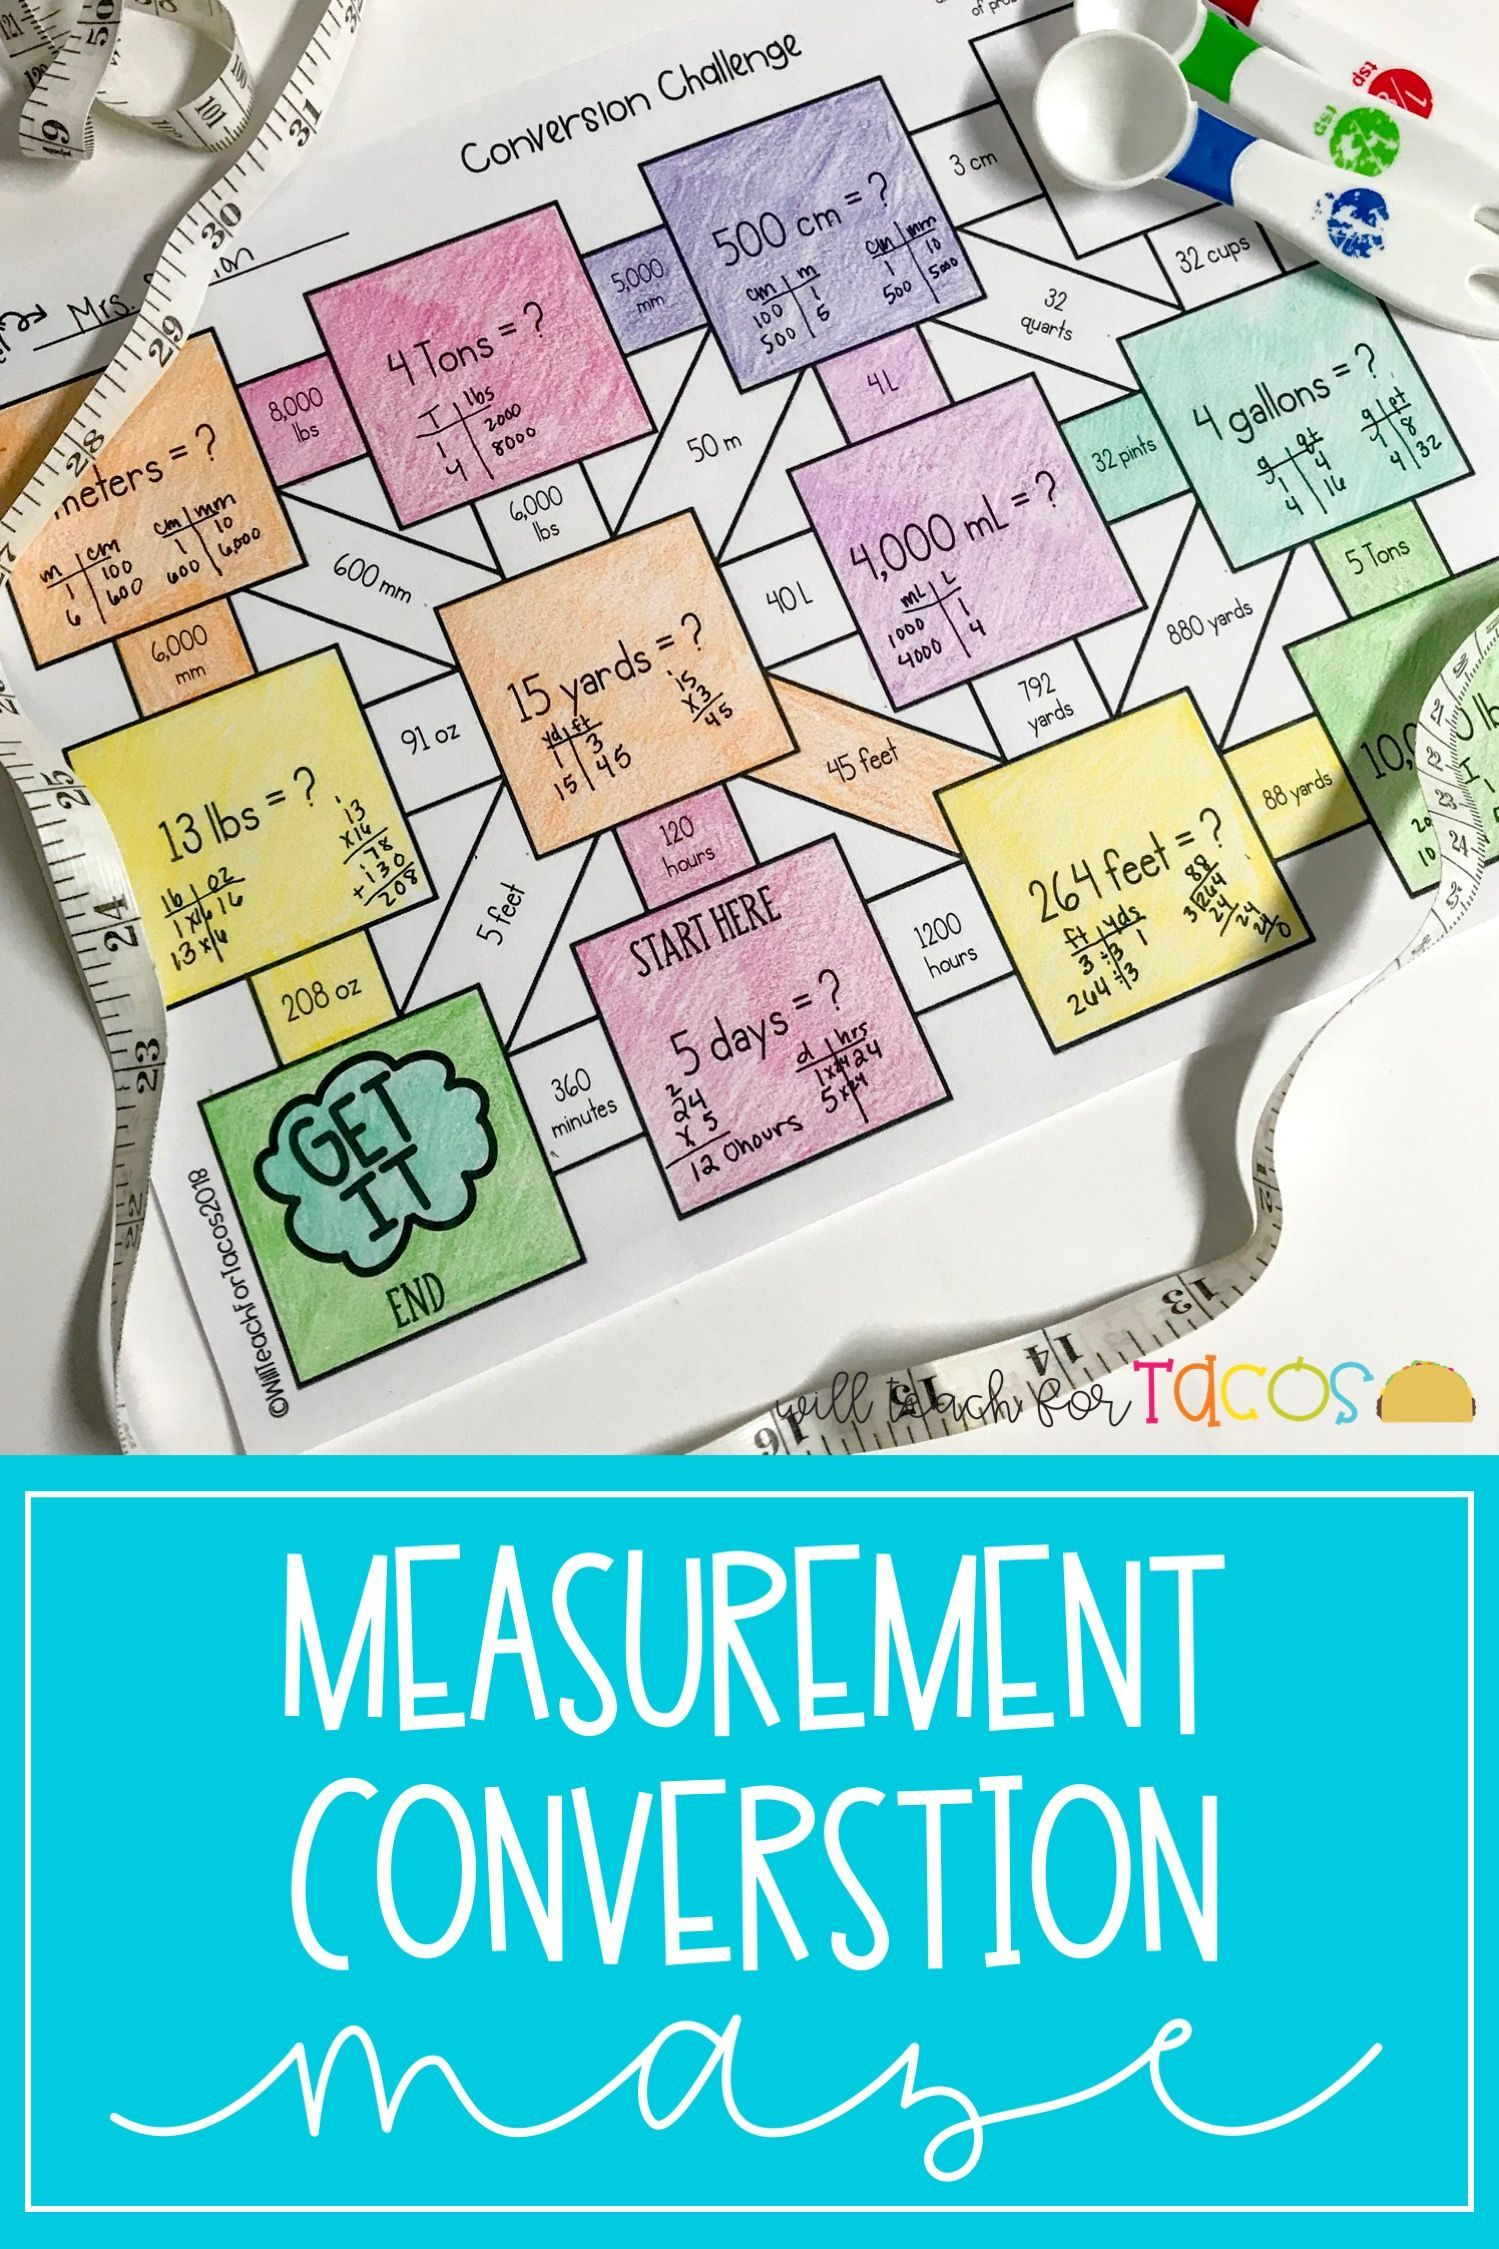 Measurement Conversions Maze 4 8b 5 7a